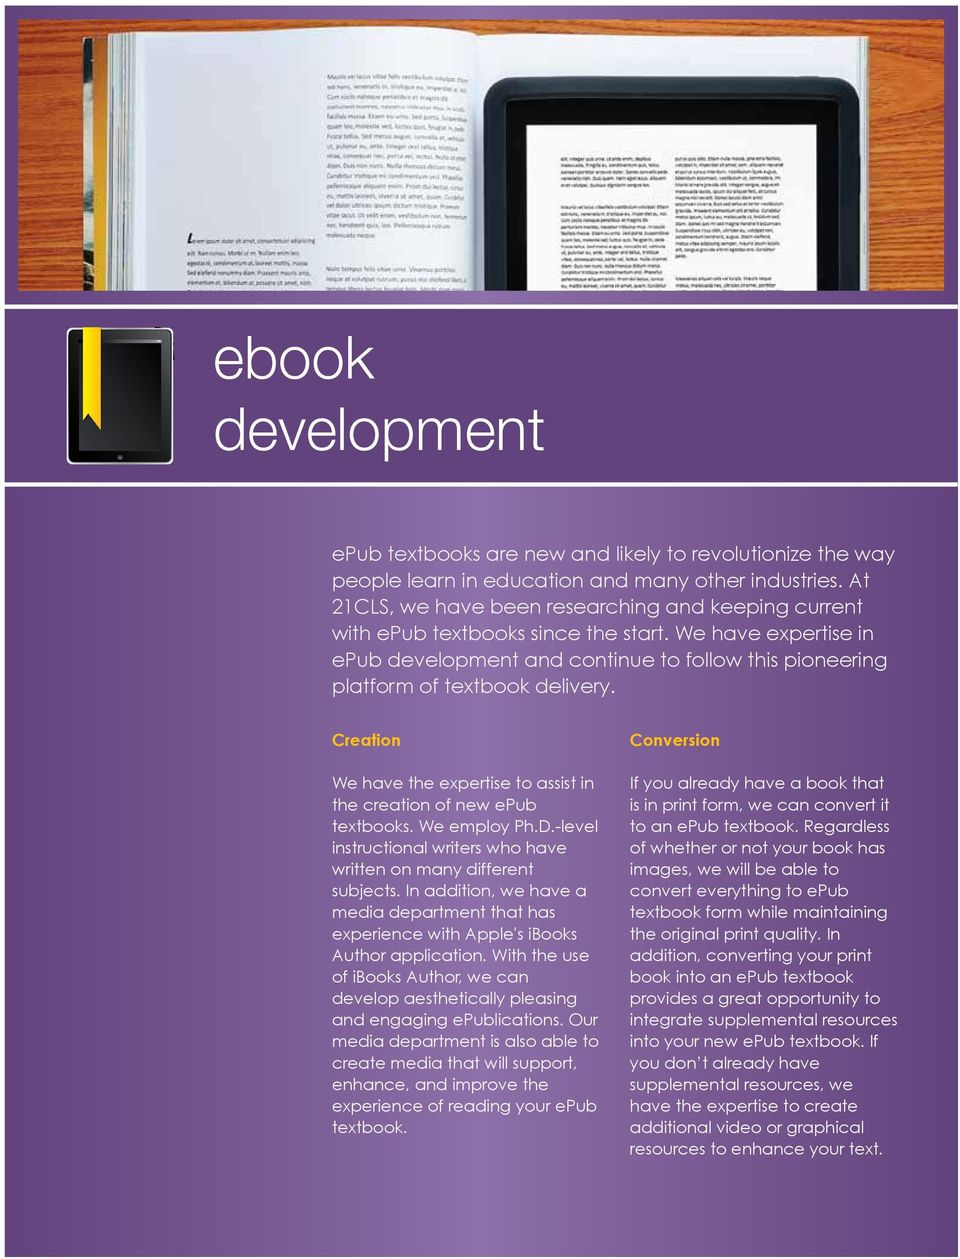 Creation We have the expertise to assist in the creation of new epub textbooks. We employ Ph.D.-level instructional writers who have written on many different subjects.